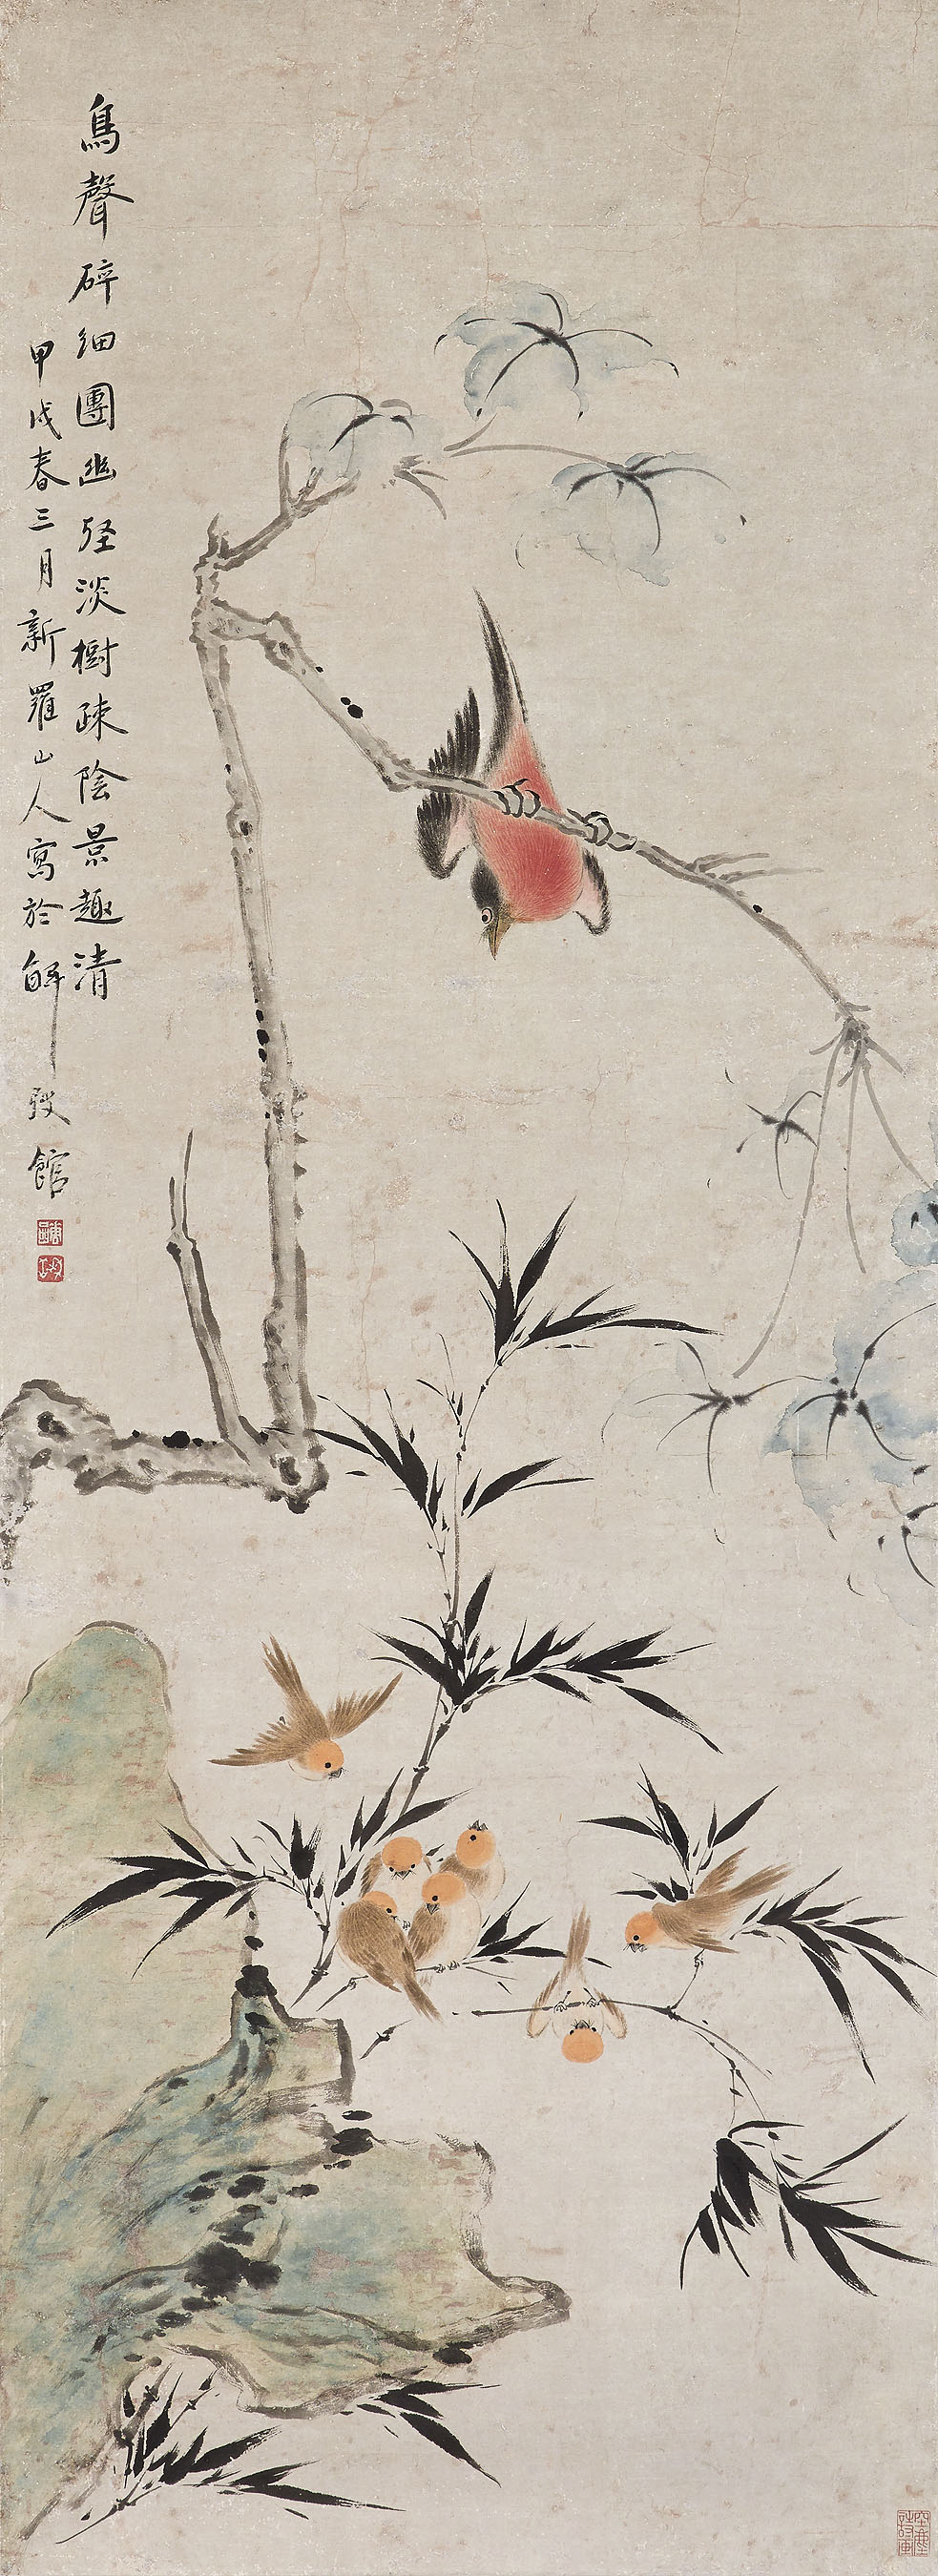 Birds and Bamboo